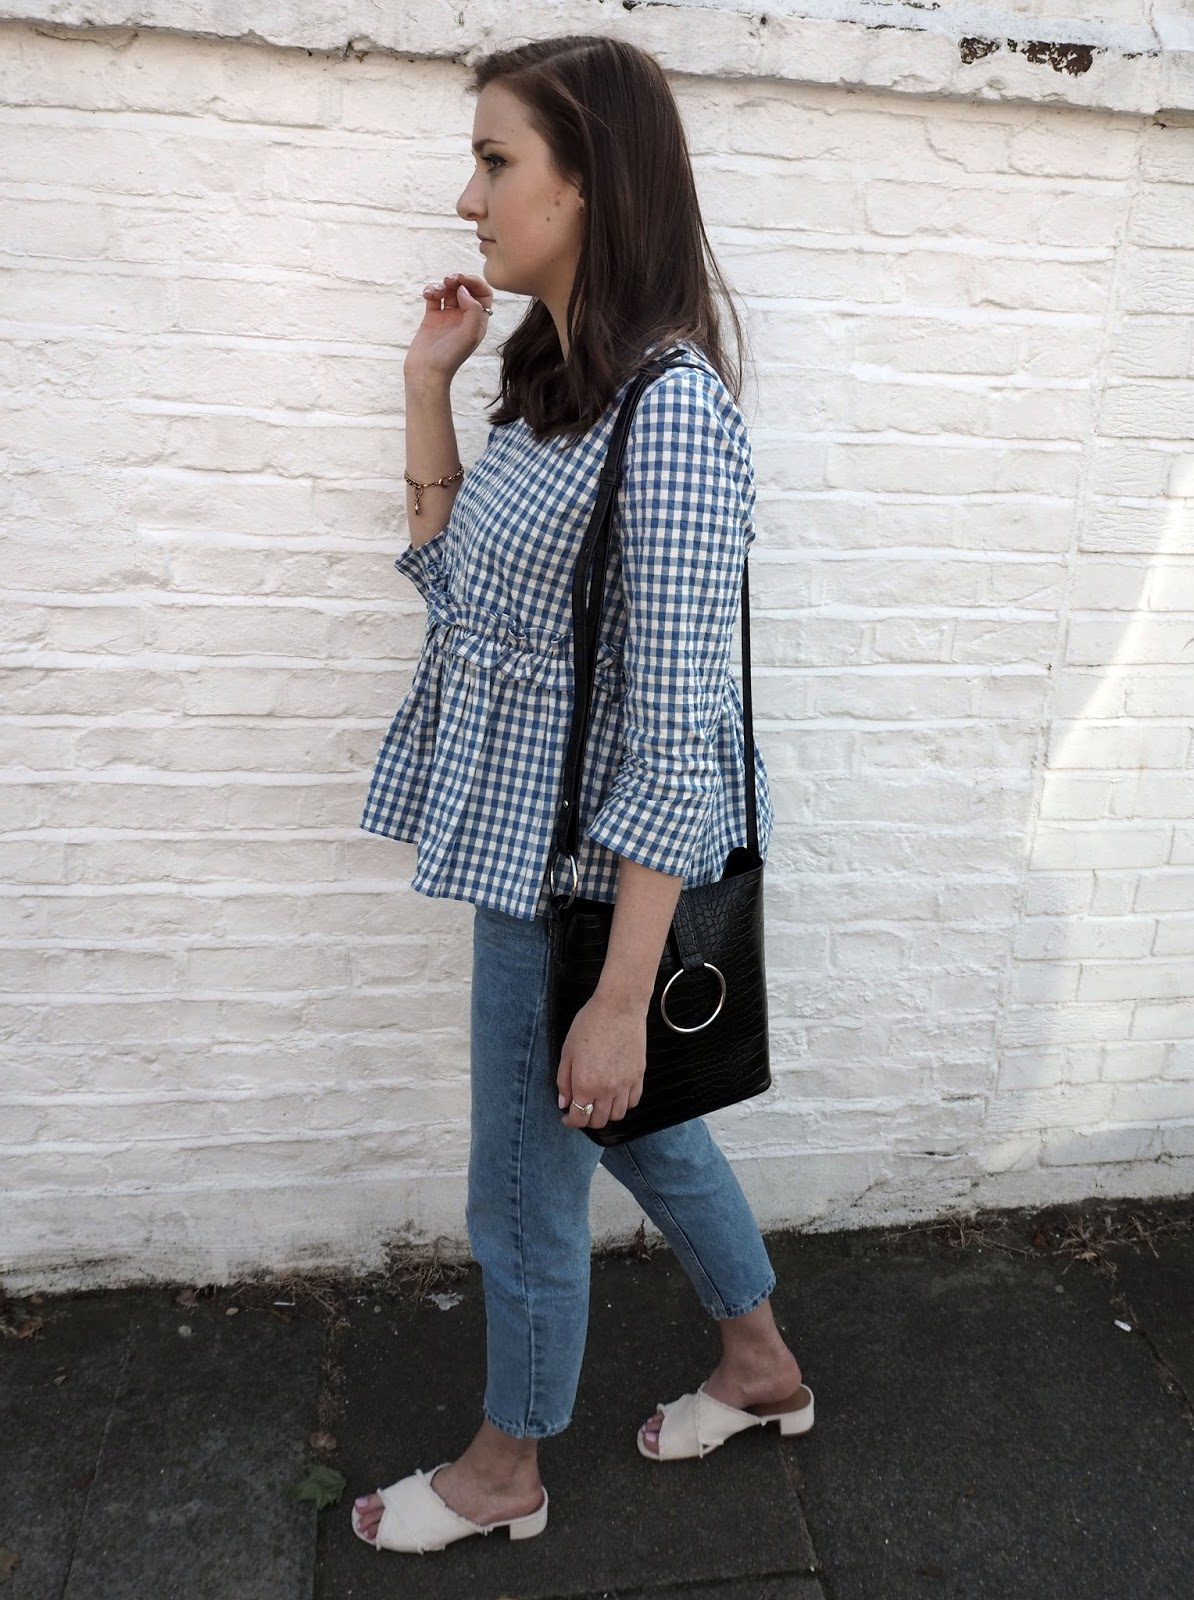 Why Do I Blog | Lauren Rose Style Blue Gingham Top Zara OOTD // Blogger Personal Thoughts Chat Post